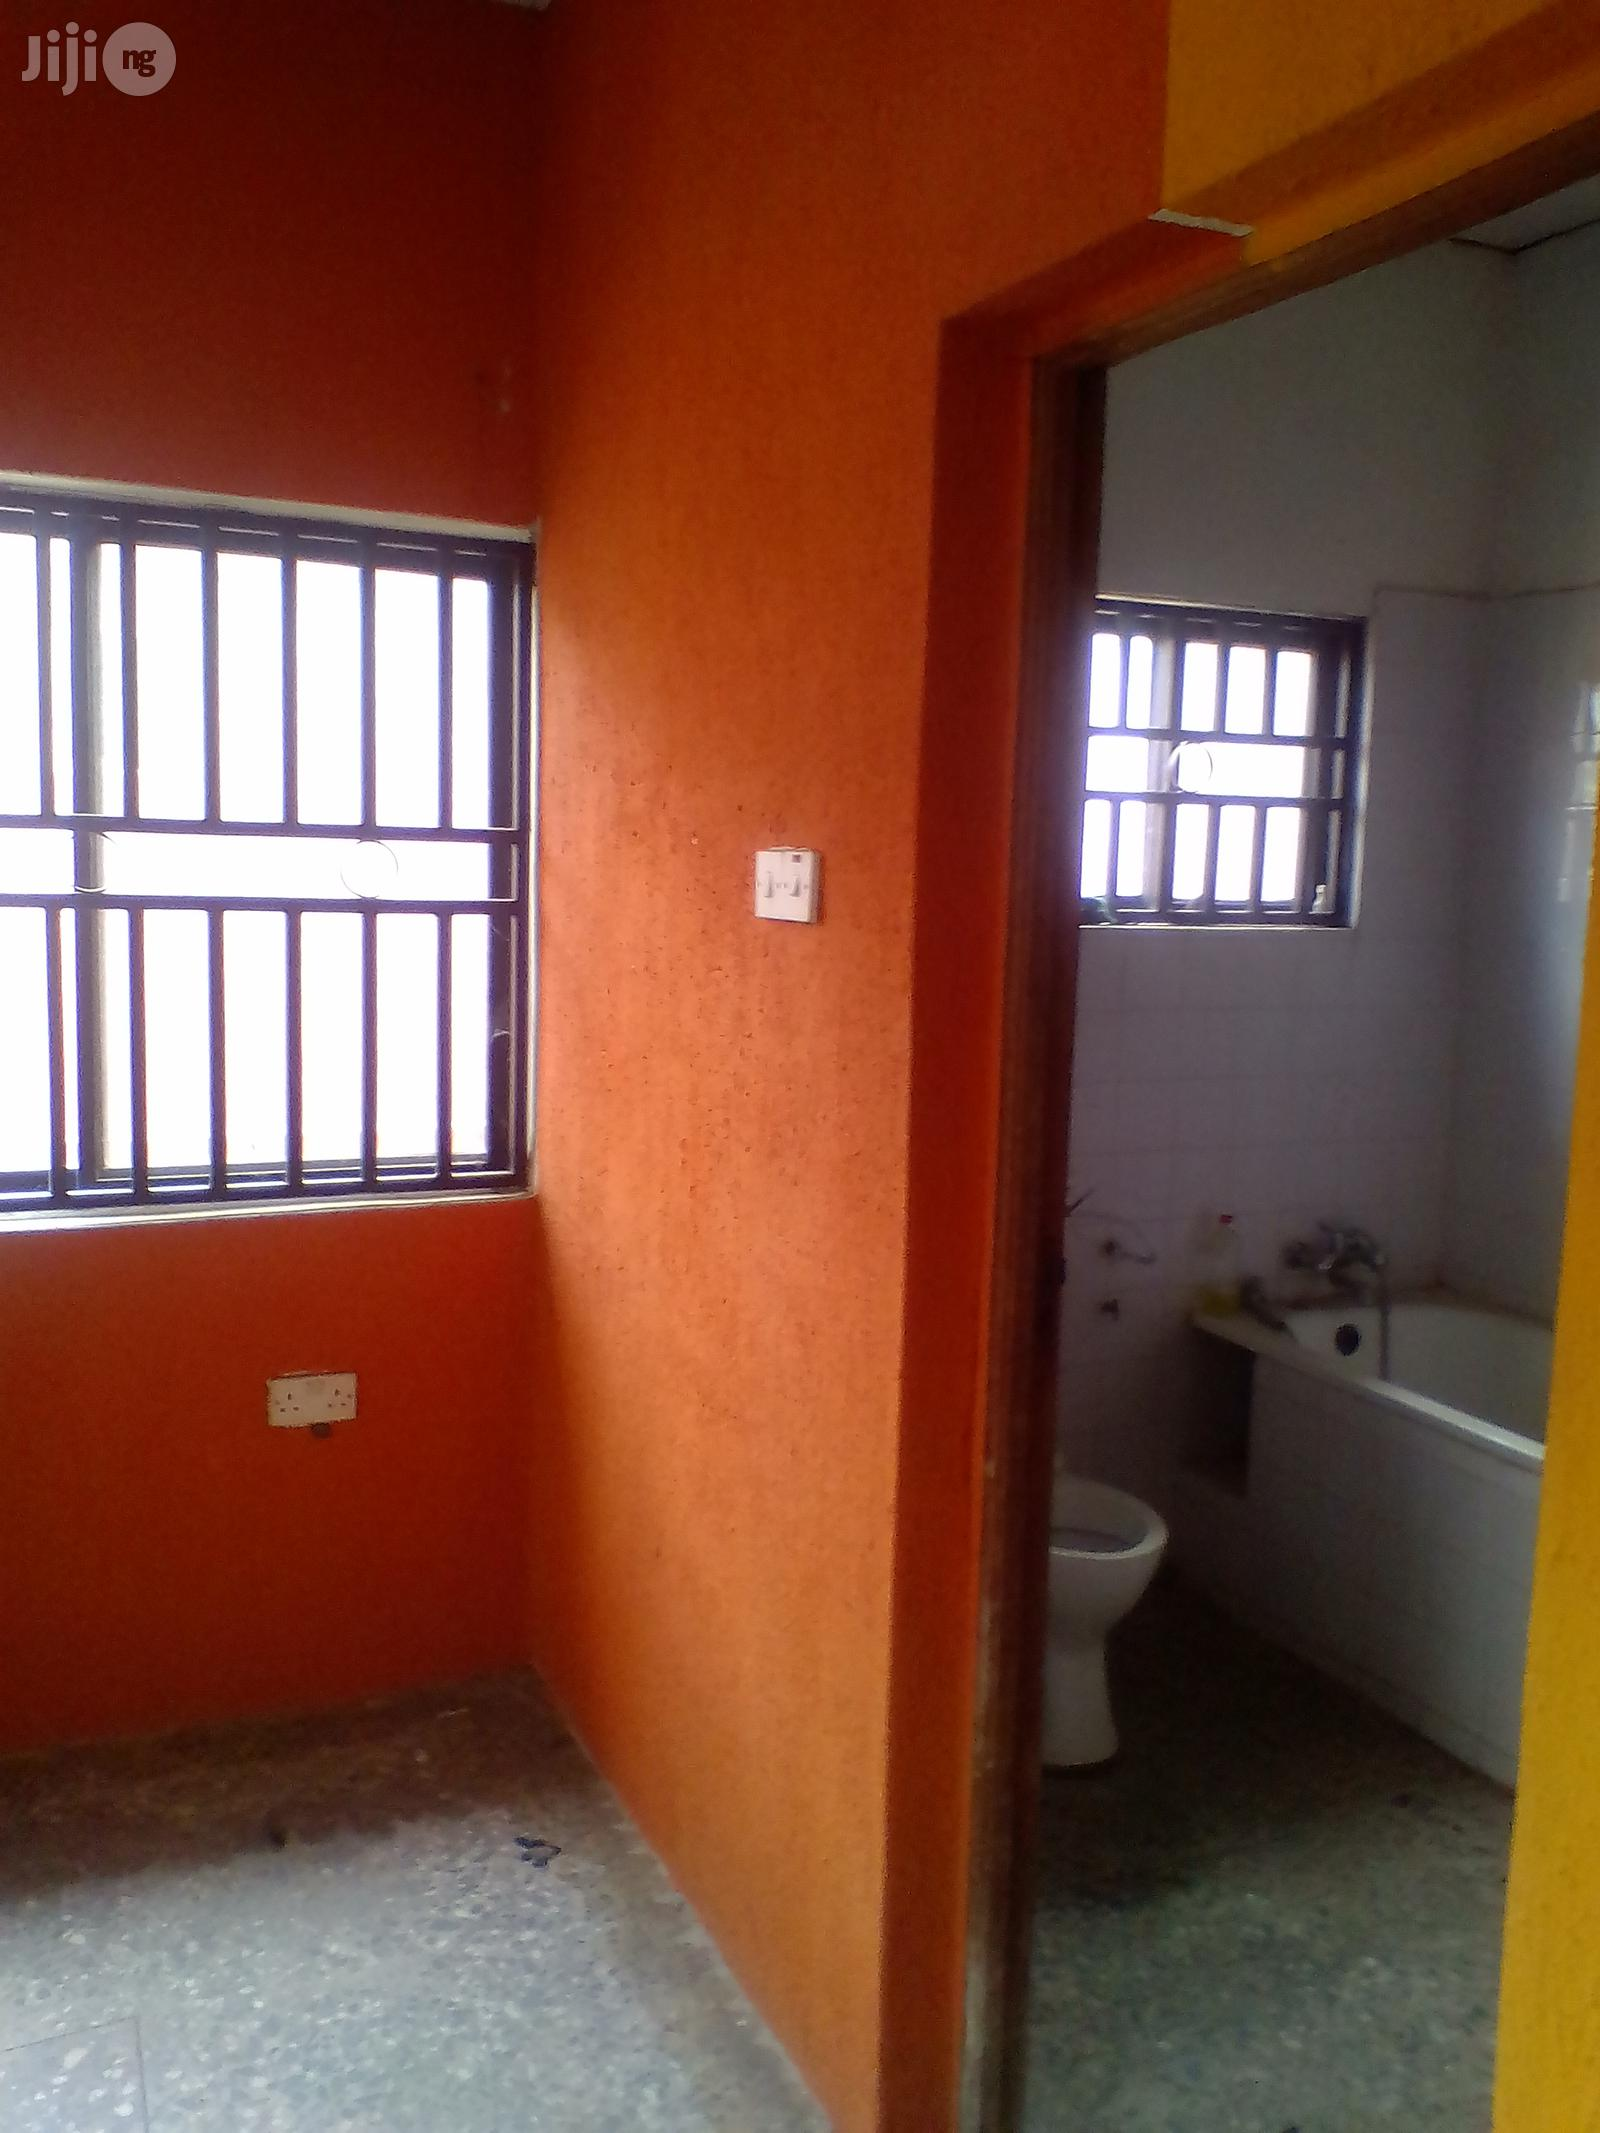 2 Bedroom Apartment at Bucknor for Rent. | Houses & Apartments For Rent for sale in Isolo, Lagos State, Nigeria